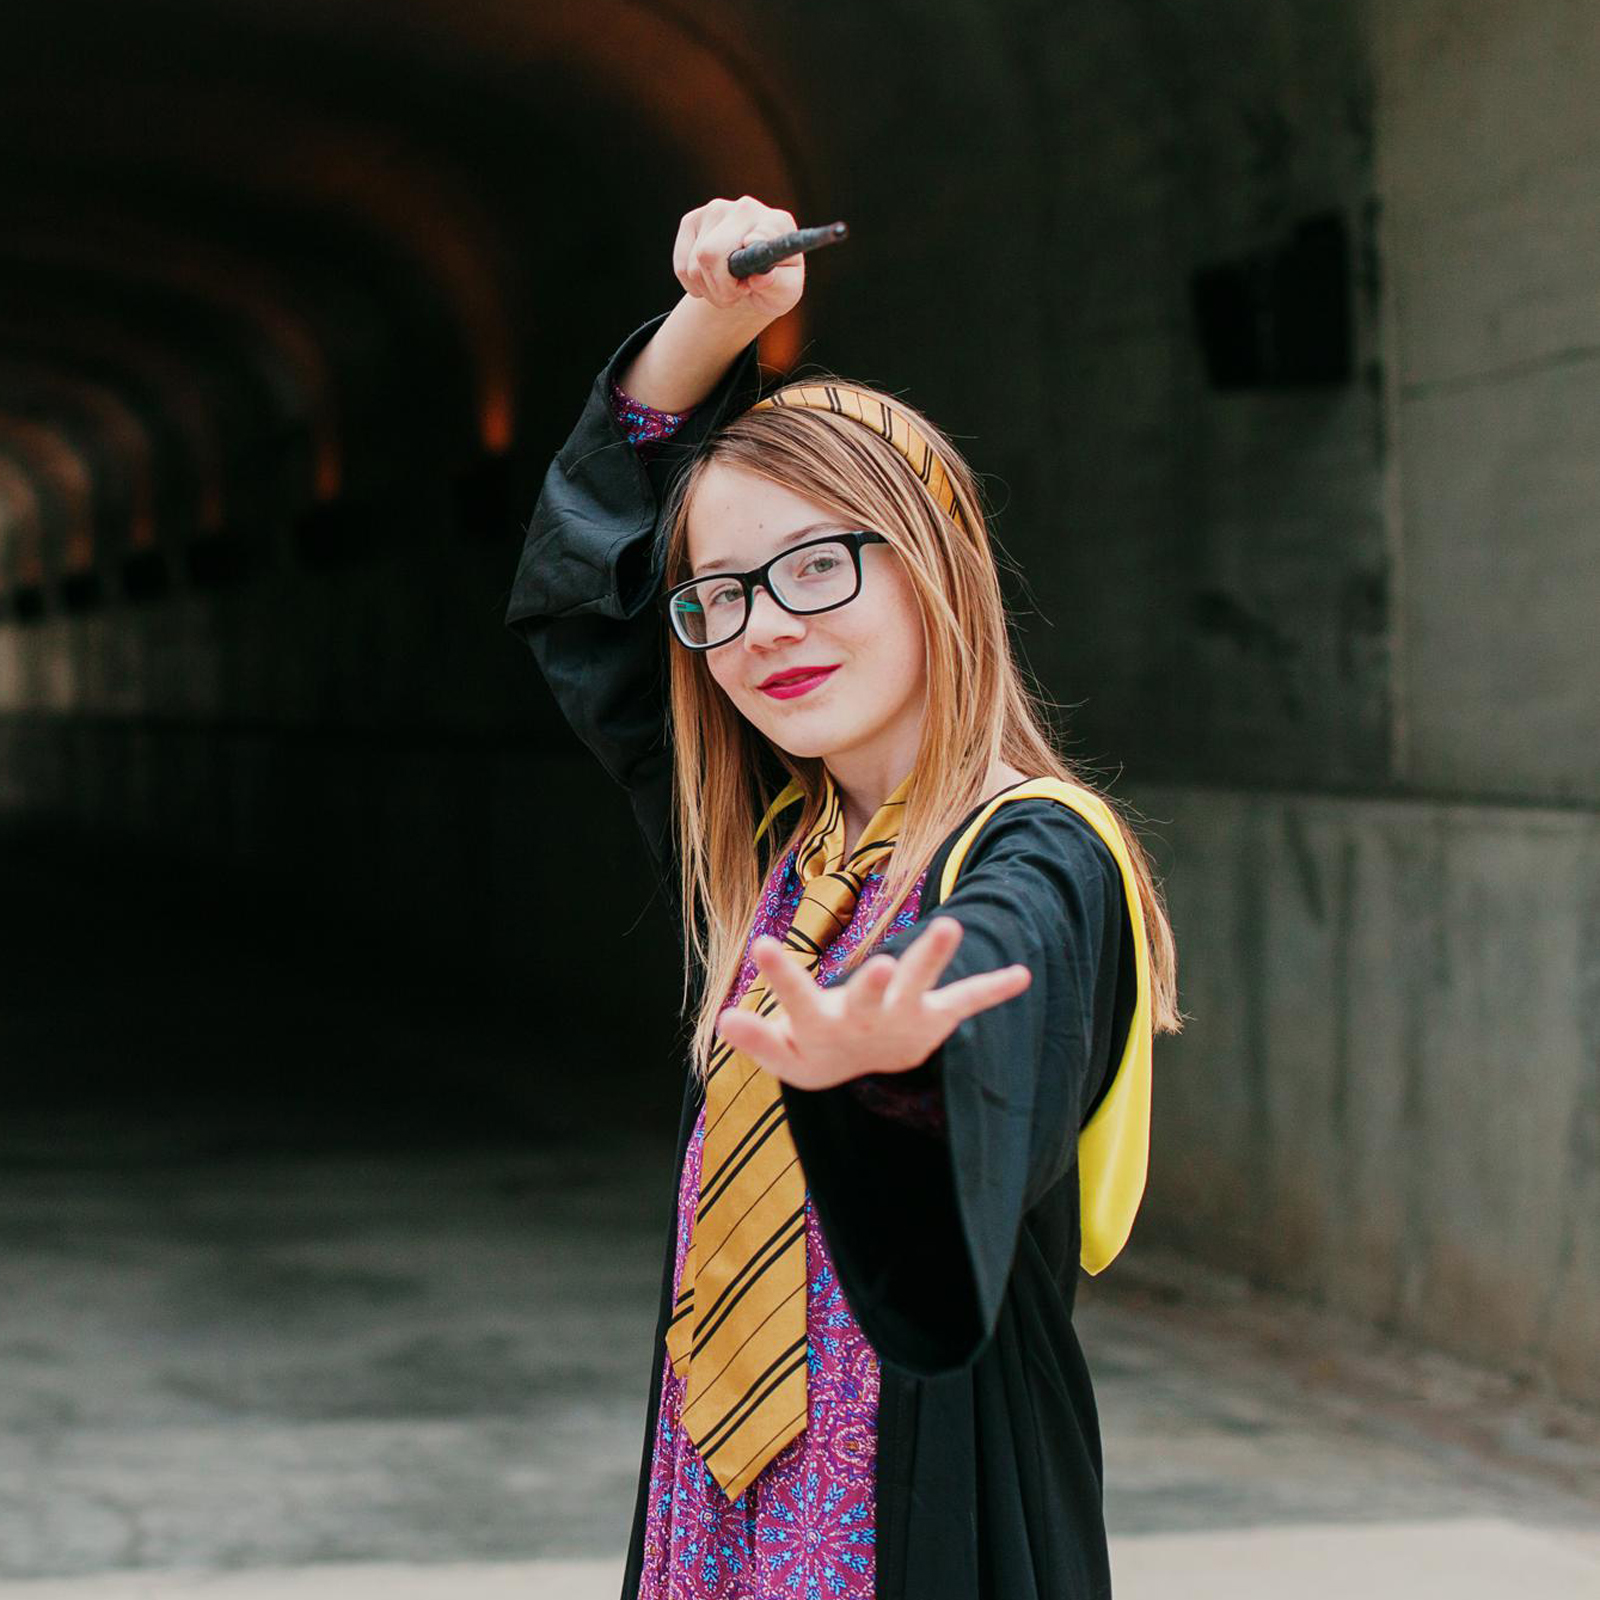 the suitcase studio offers free portrait sessions for tweens ages 10-12 as part of the who i am project